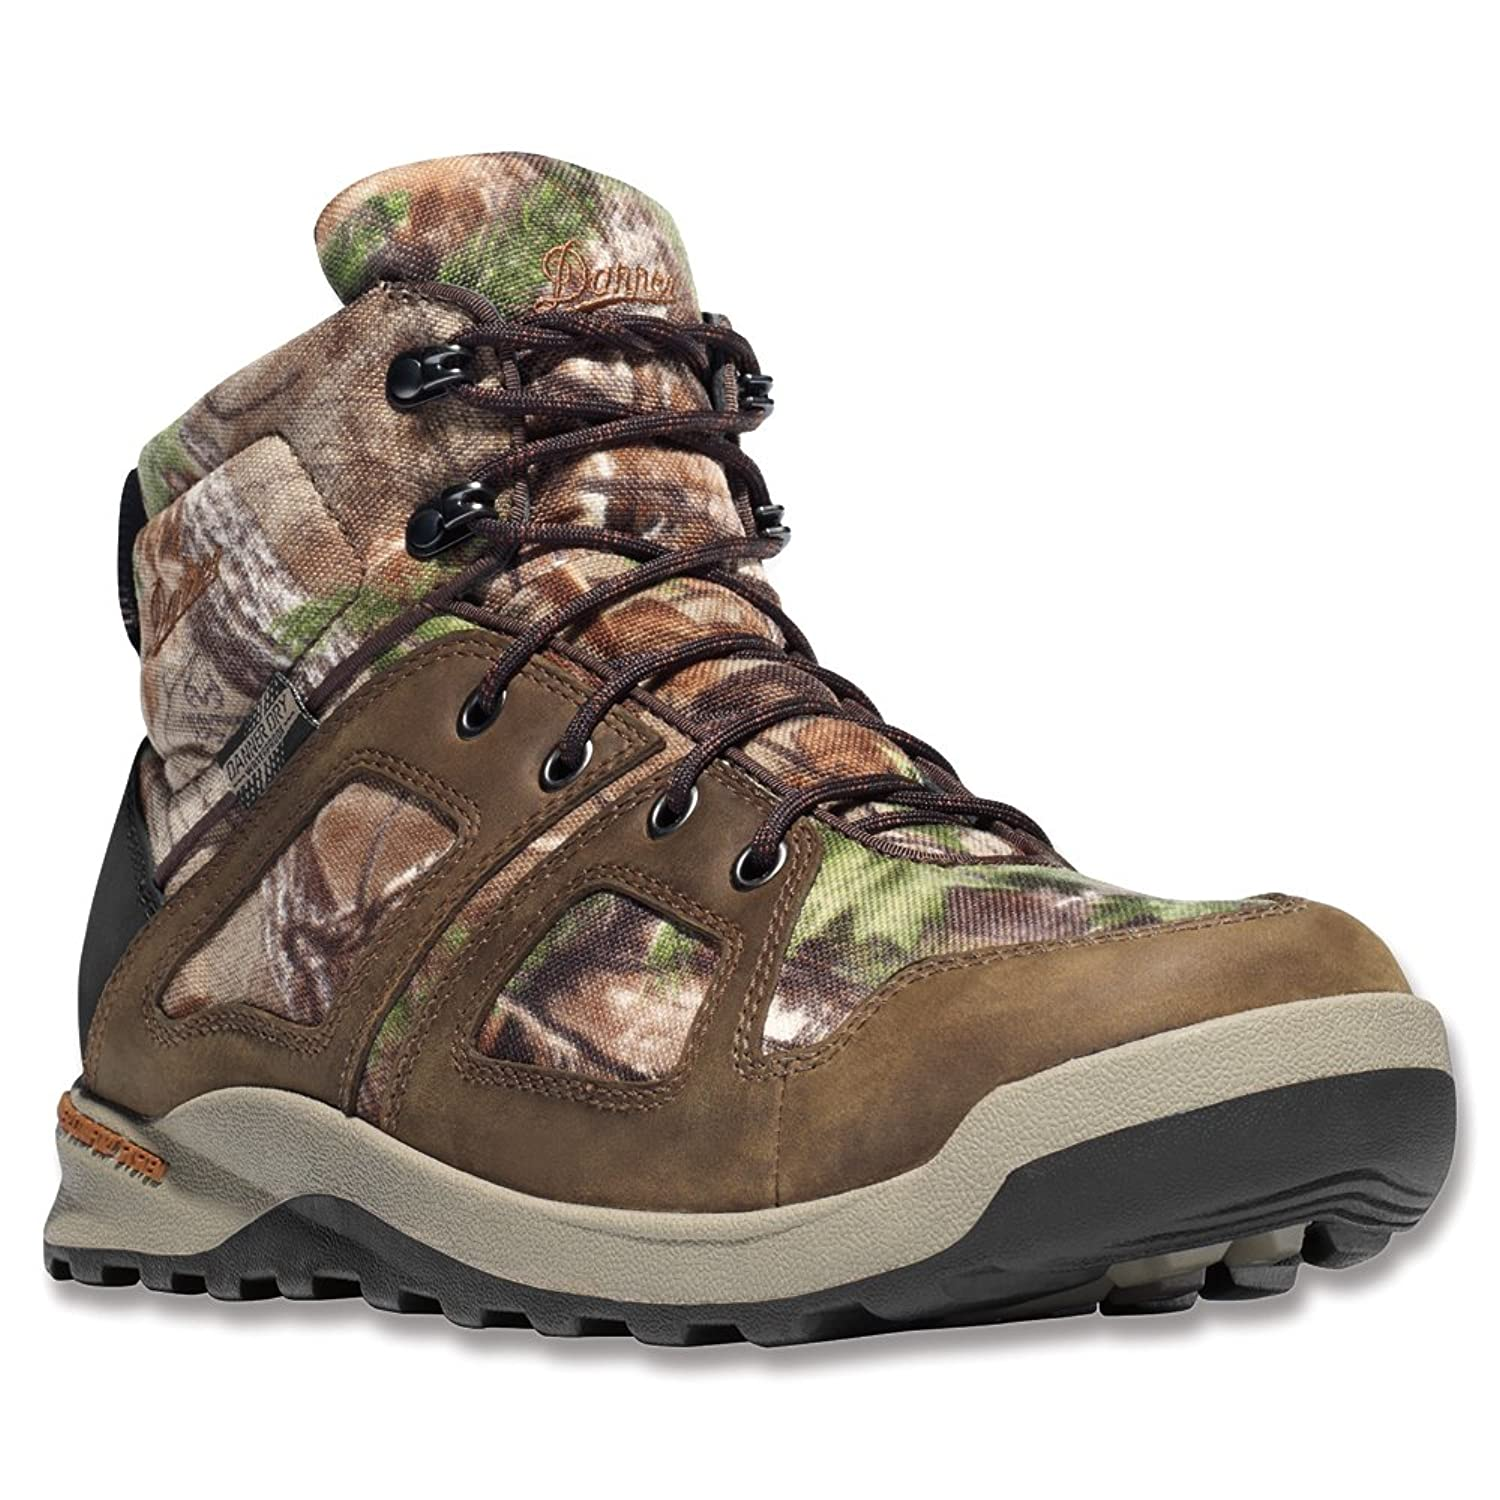 48061 Danner Men's Steadfast Hunting Boots - Realtree Xtra